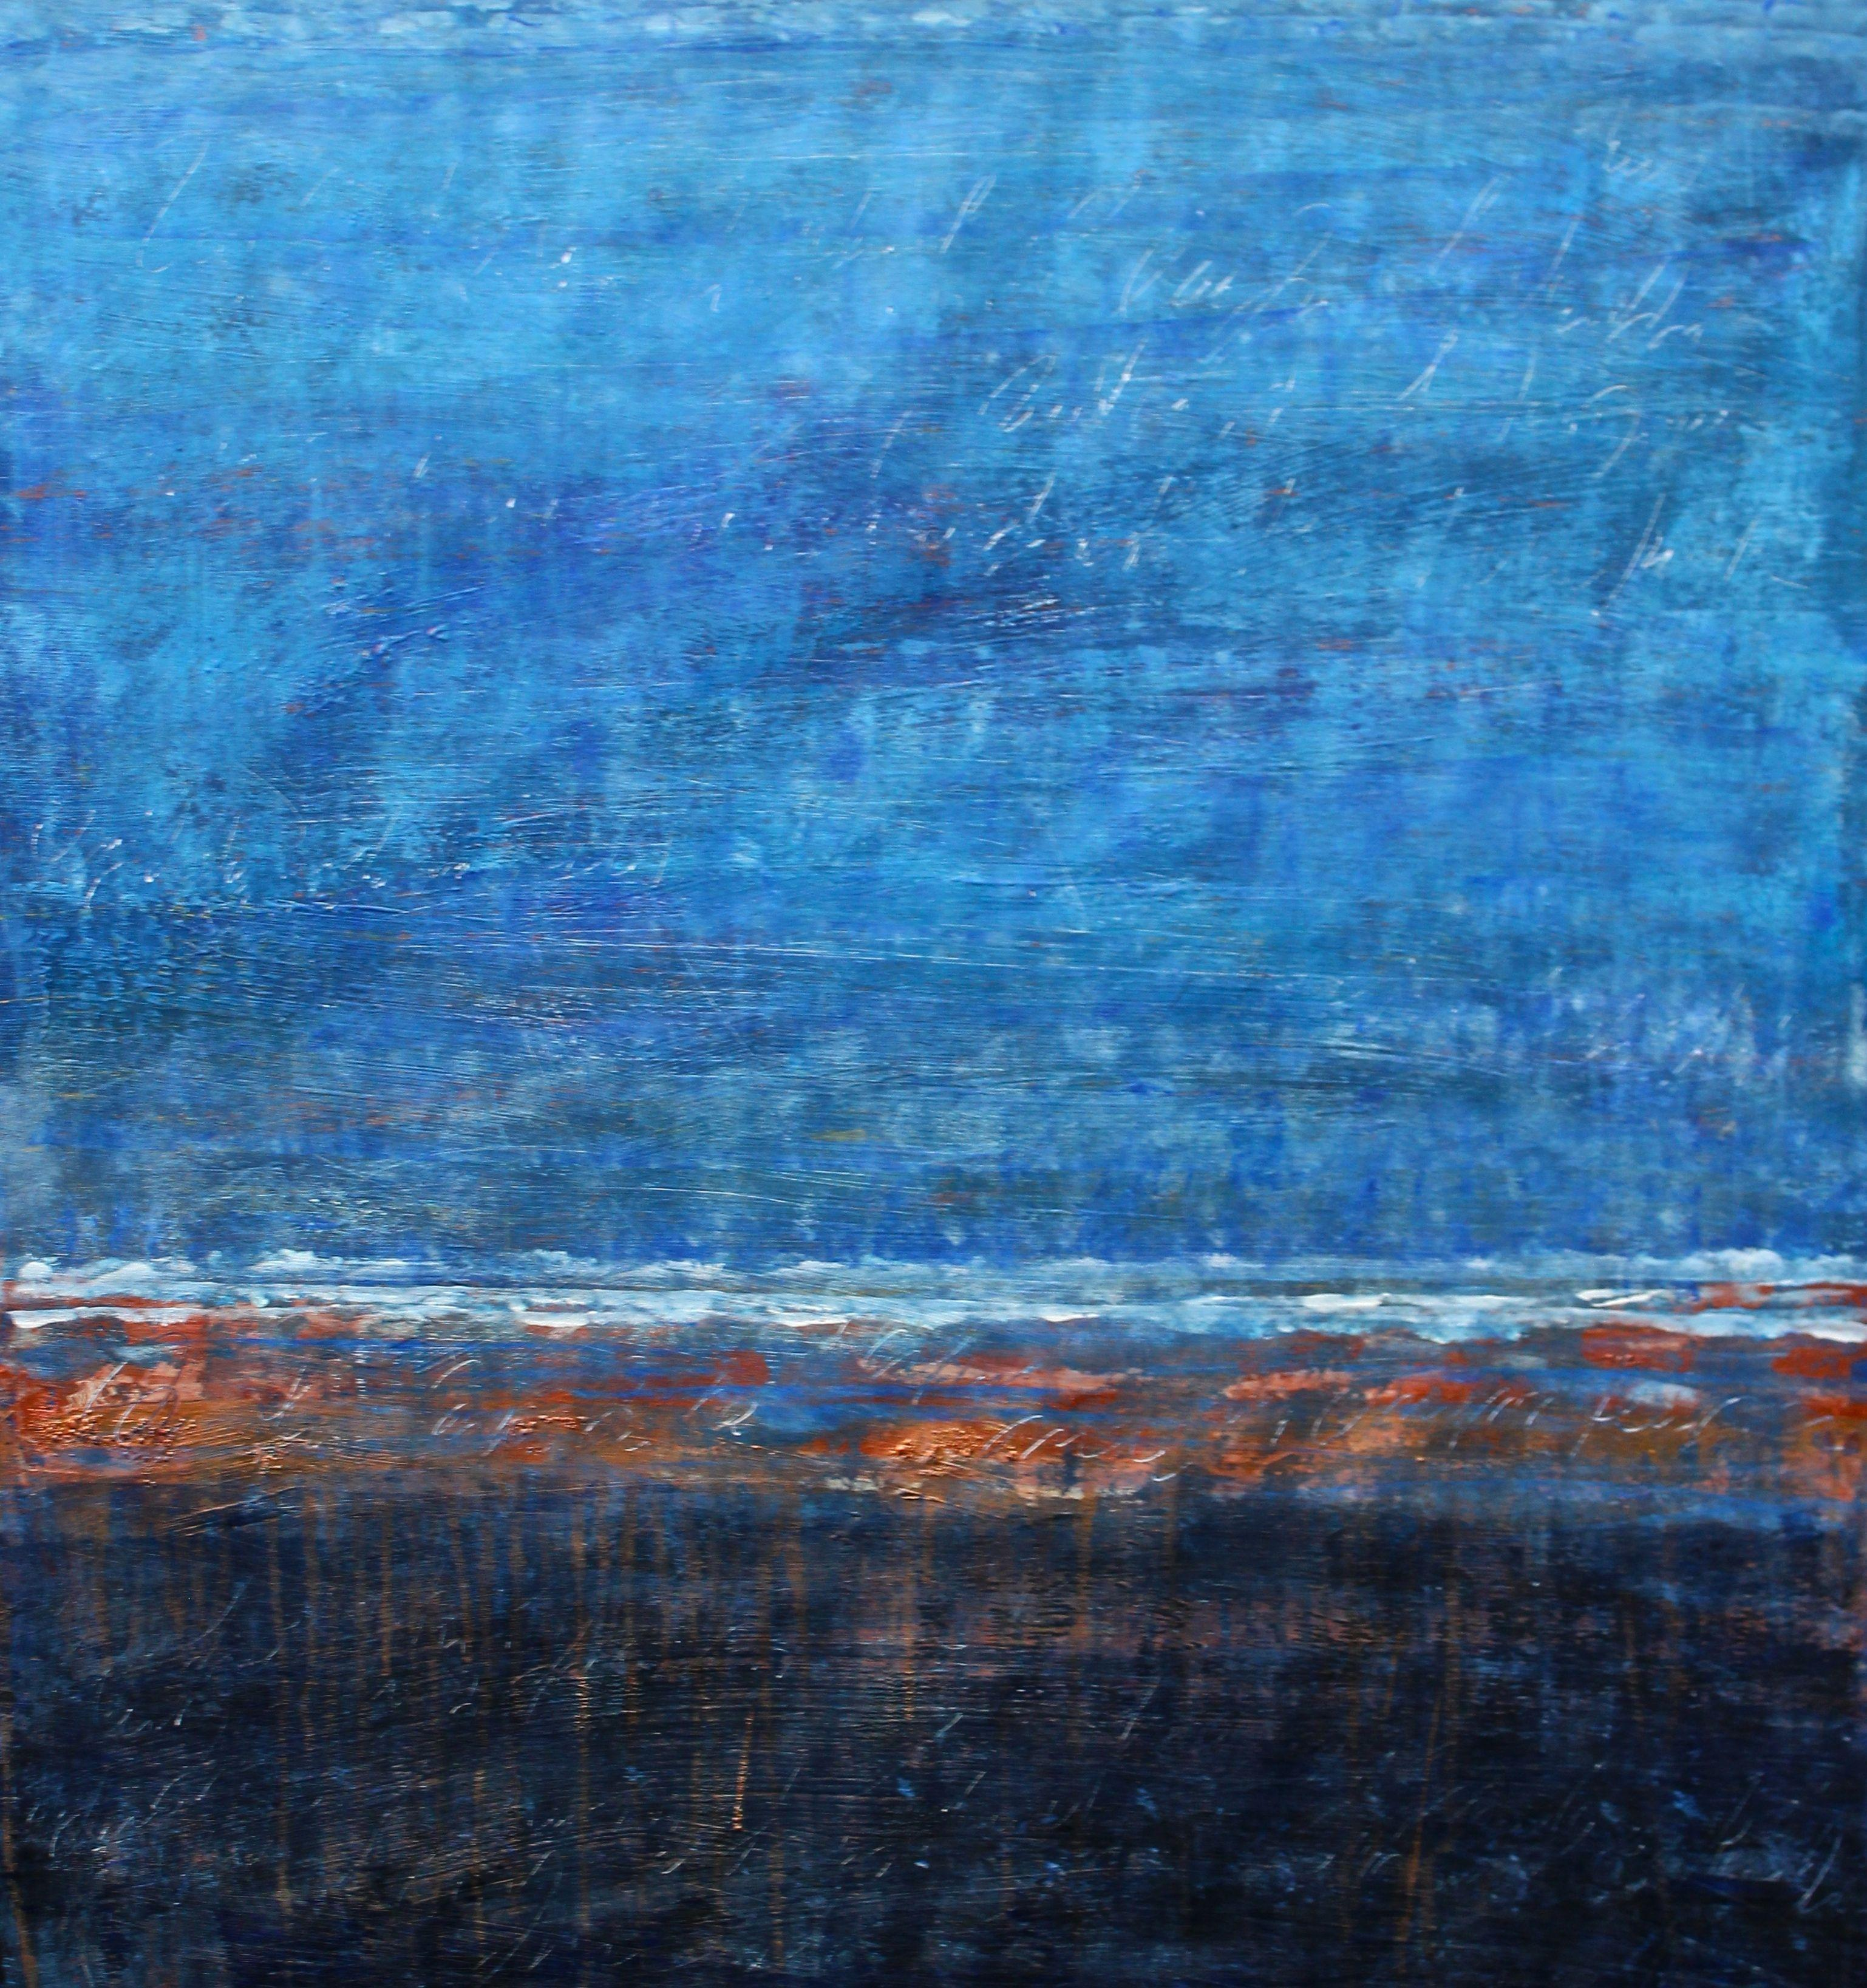 Sinking Back Into the Ocean II, Painting, Acrylic on Paper